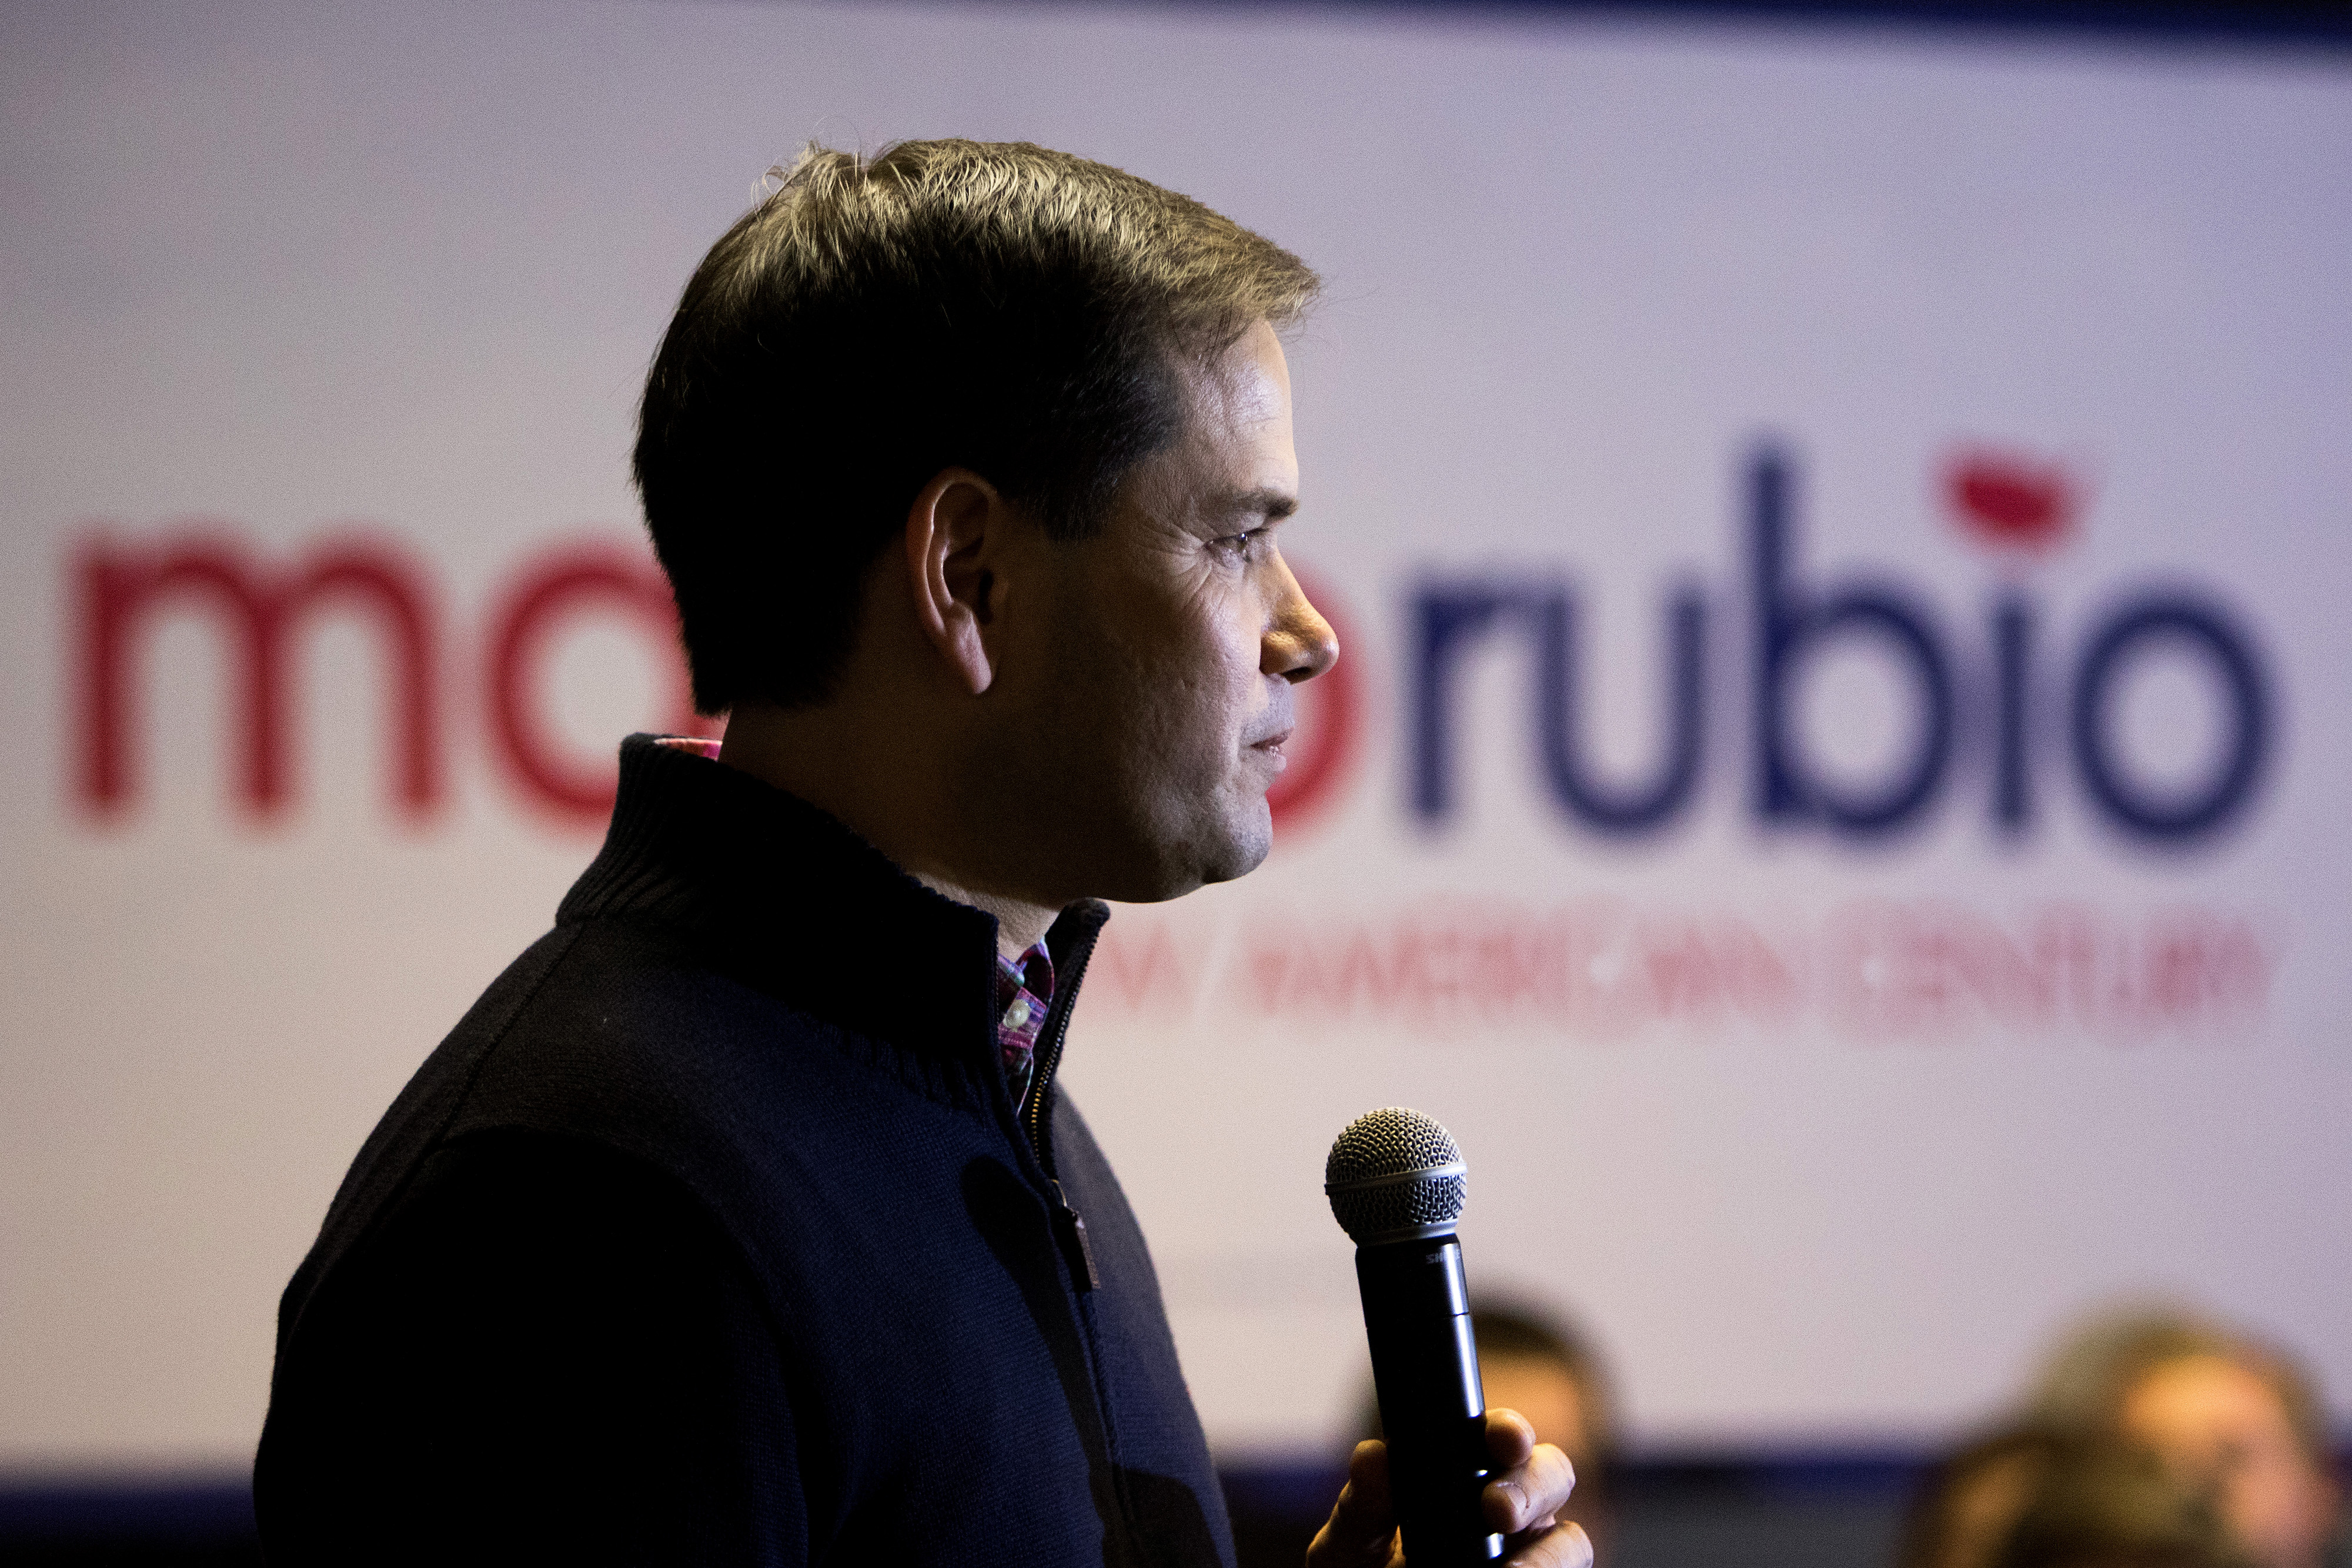 Marco Rubio speaks during a town hall meeting at the Pella Golf and Country Club in Pella, Iowa on Dec. 30, 2015.